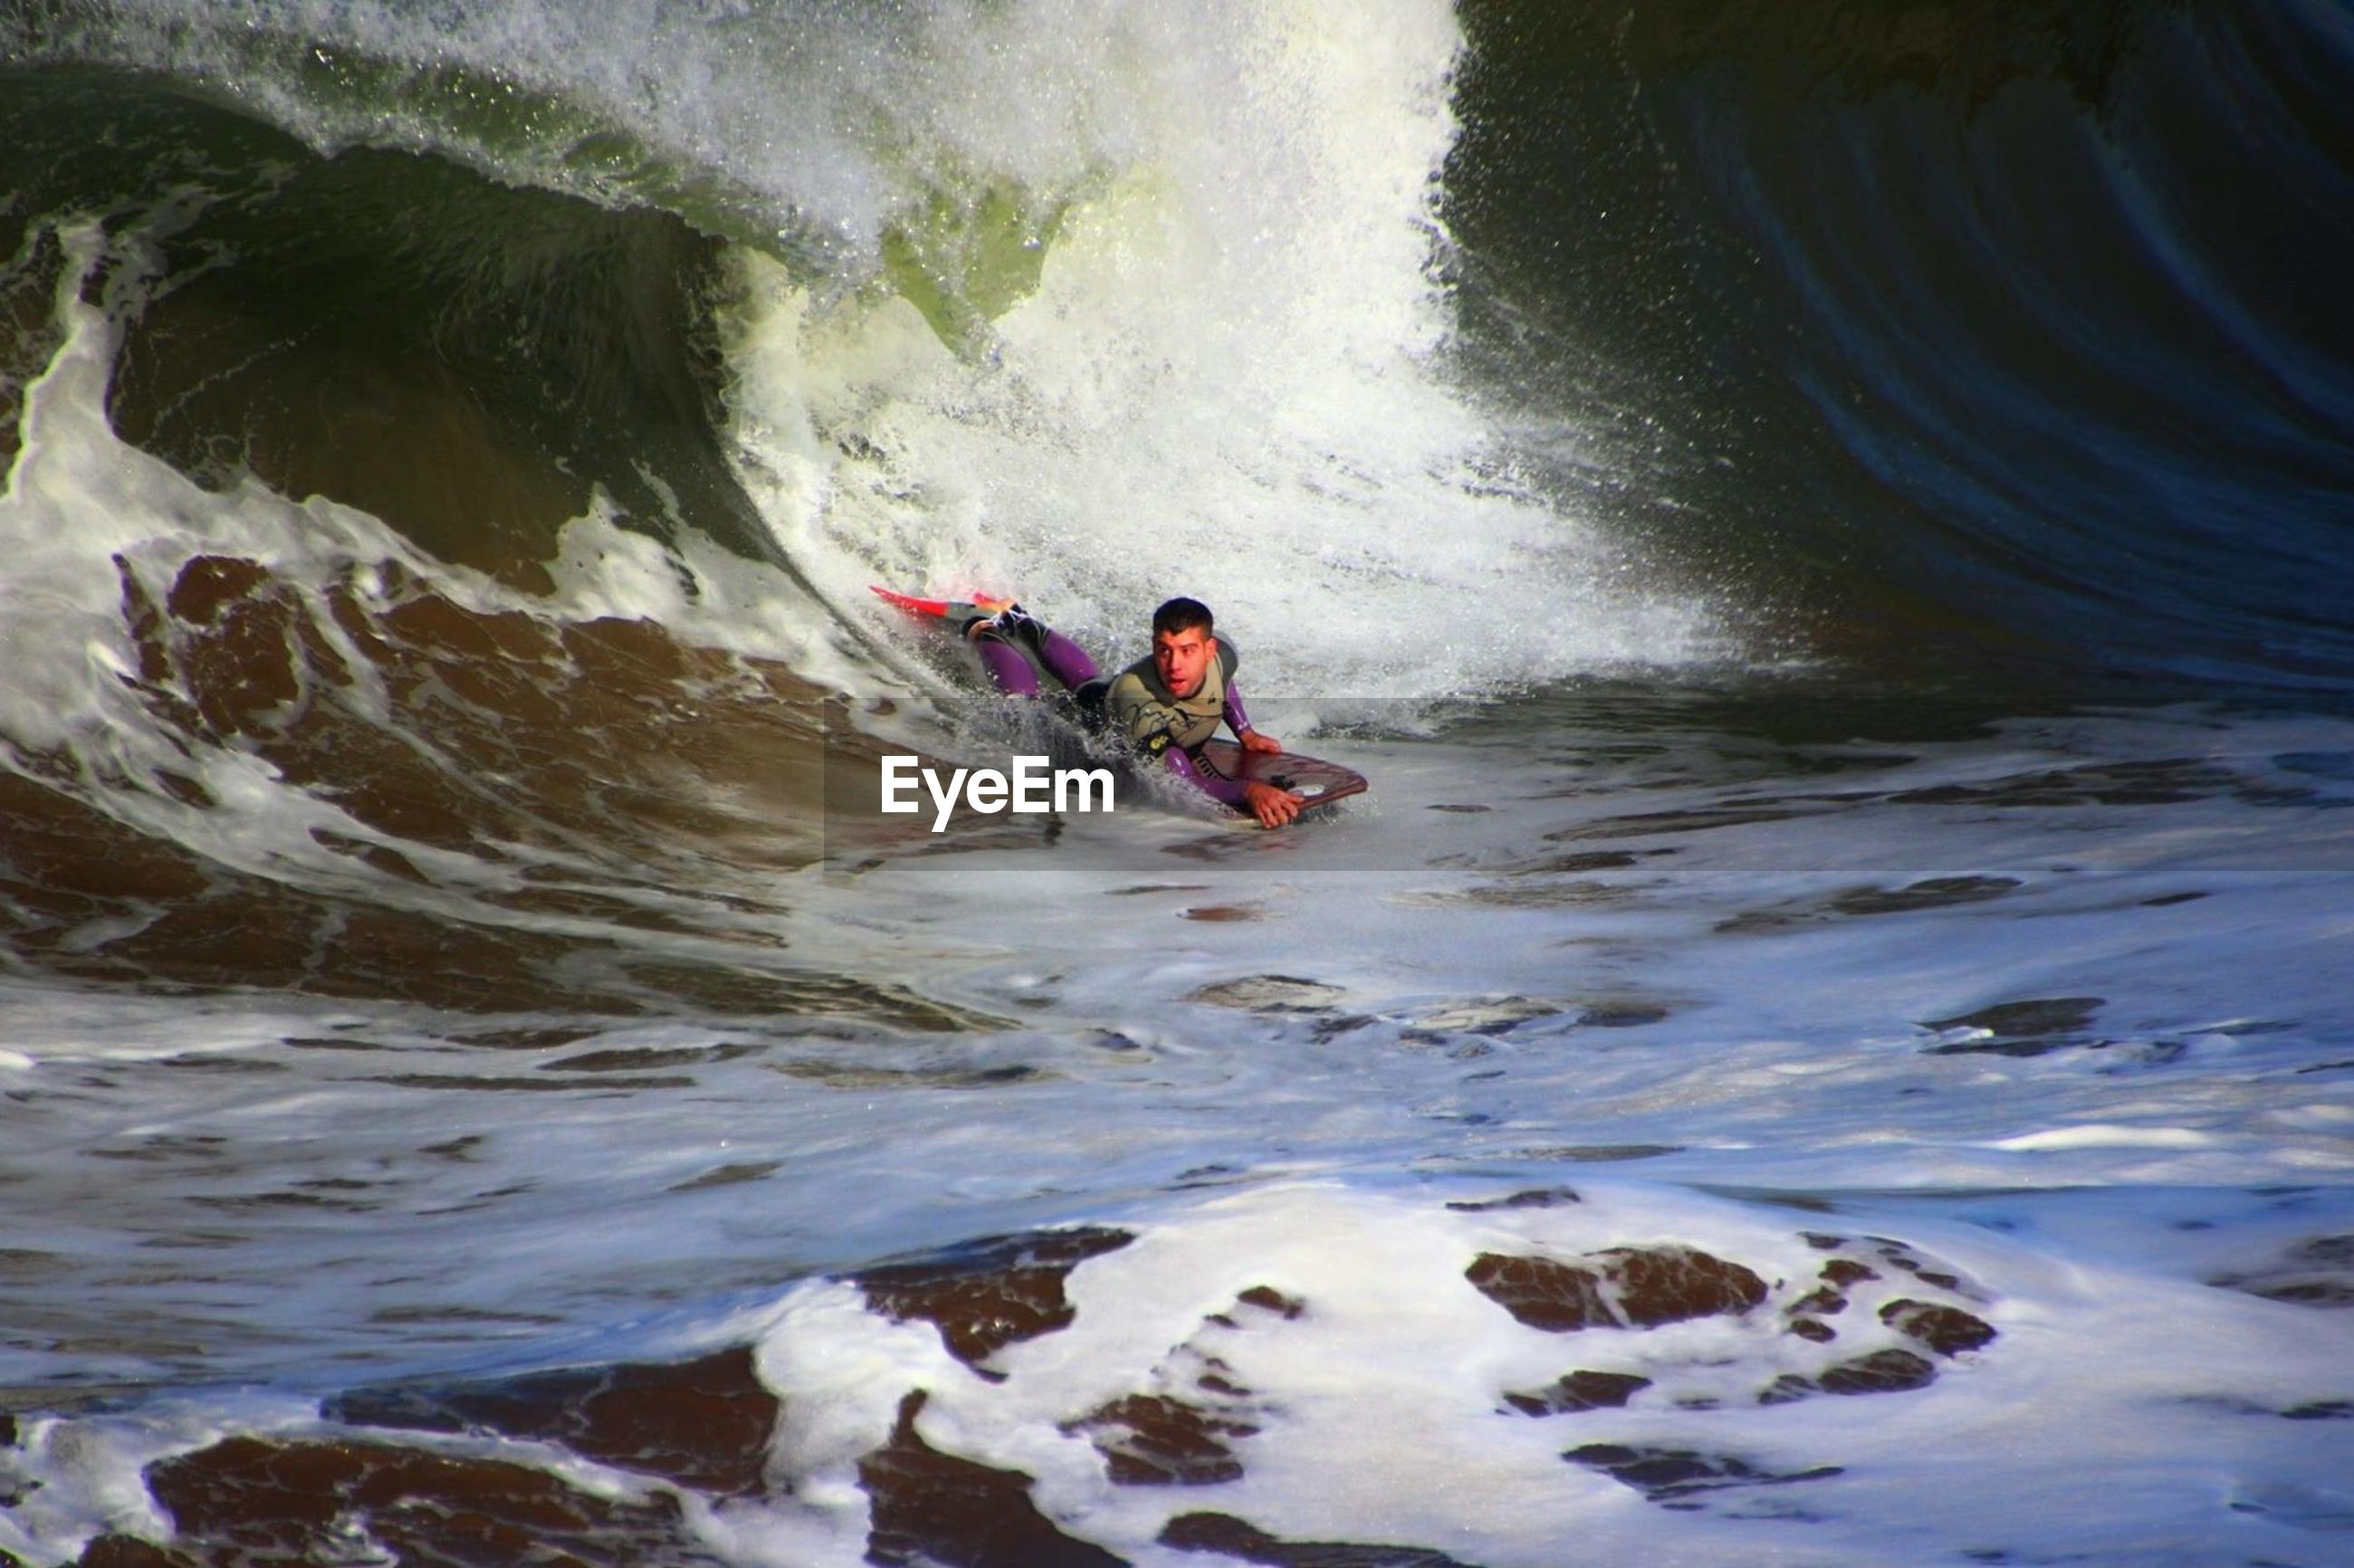 water, lifestyles, leisure activity, motion, adventure, men, extreme sports, vacations, full length, rock - object, waterfront, wave, recreational pursuit, high angle view, nature, splashing, surf, speed